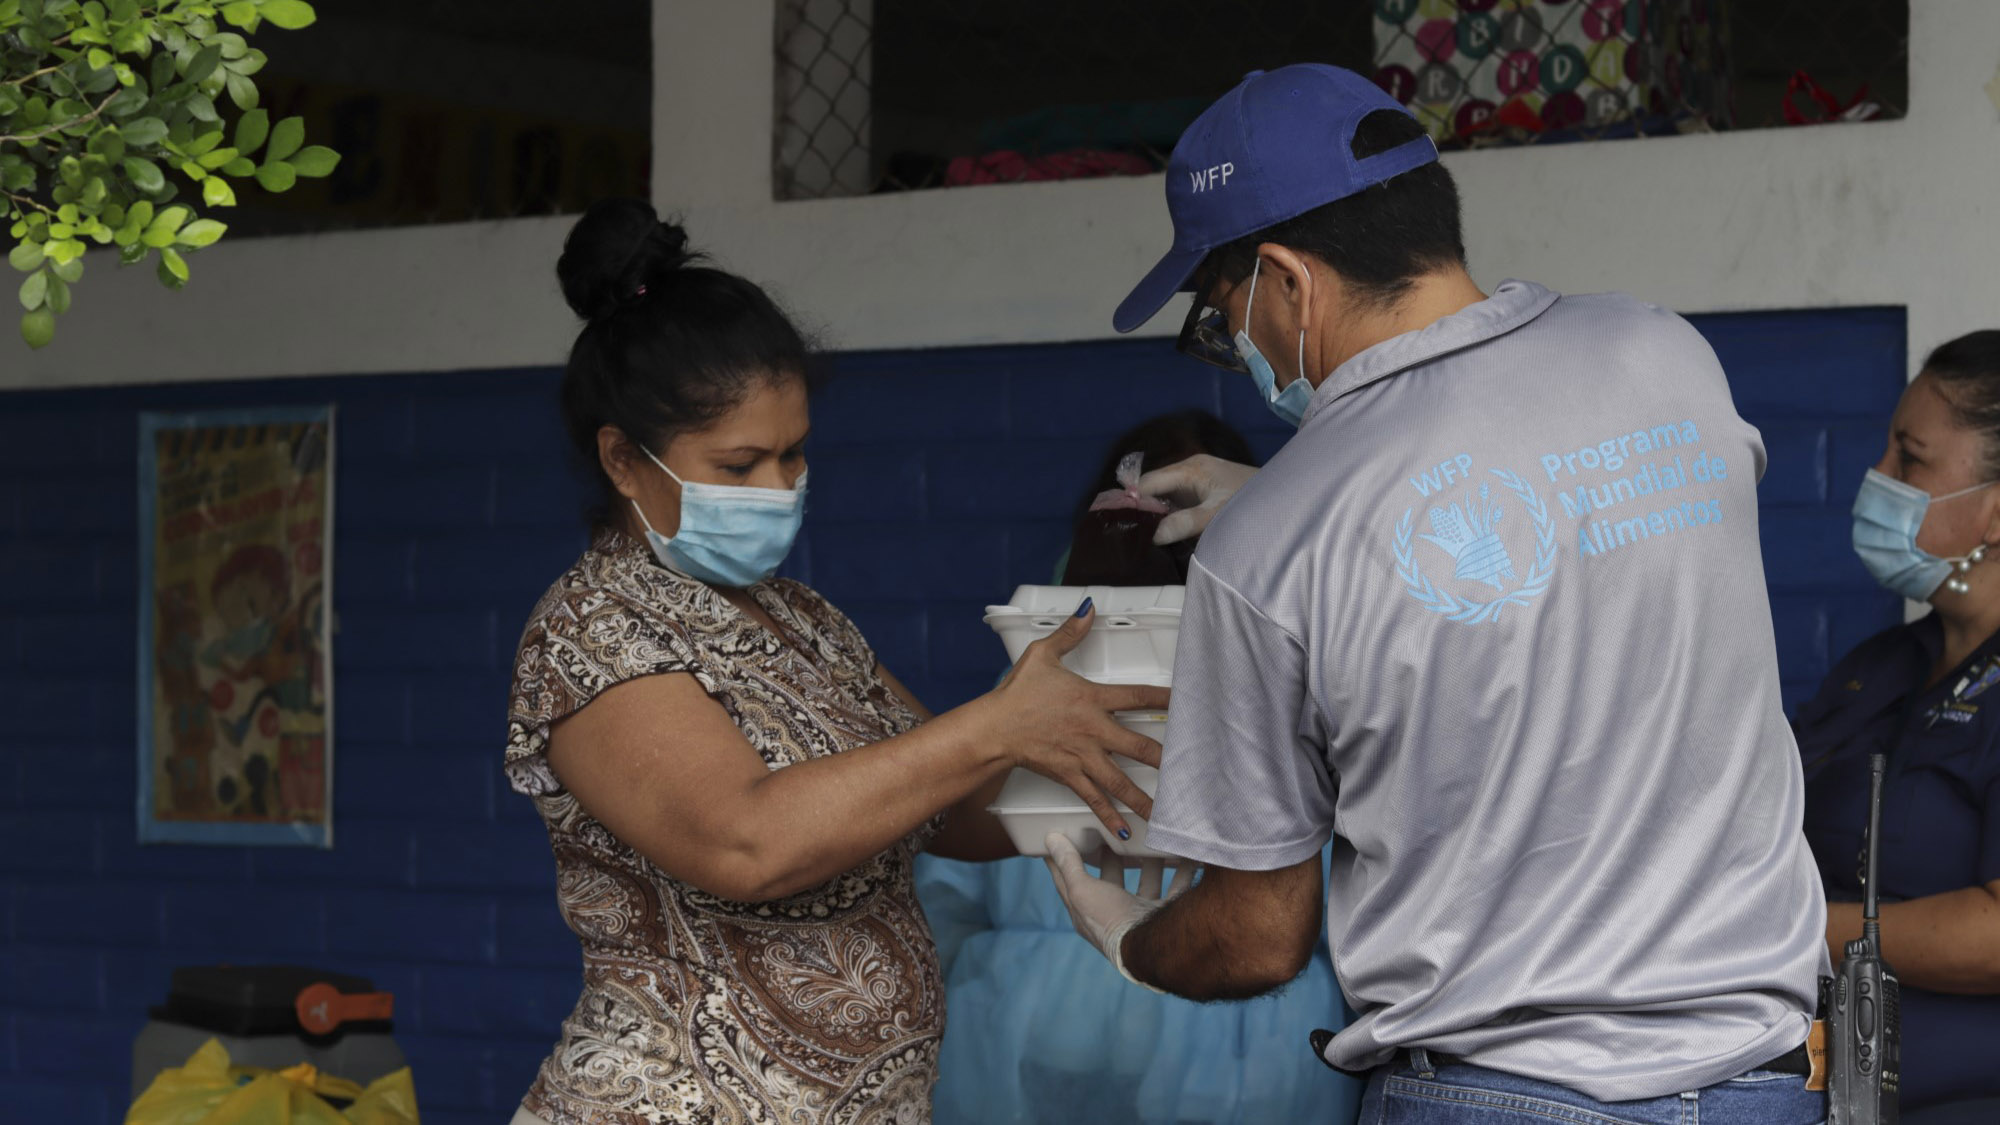 A World Food Programme staff member handing food to a woman in El Salvador.